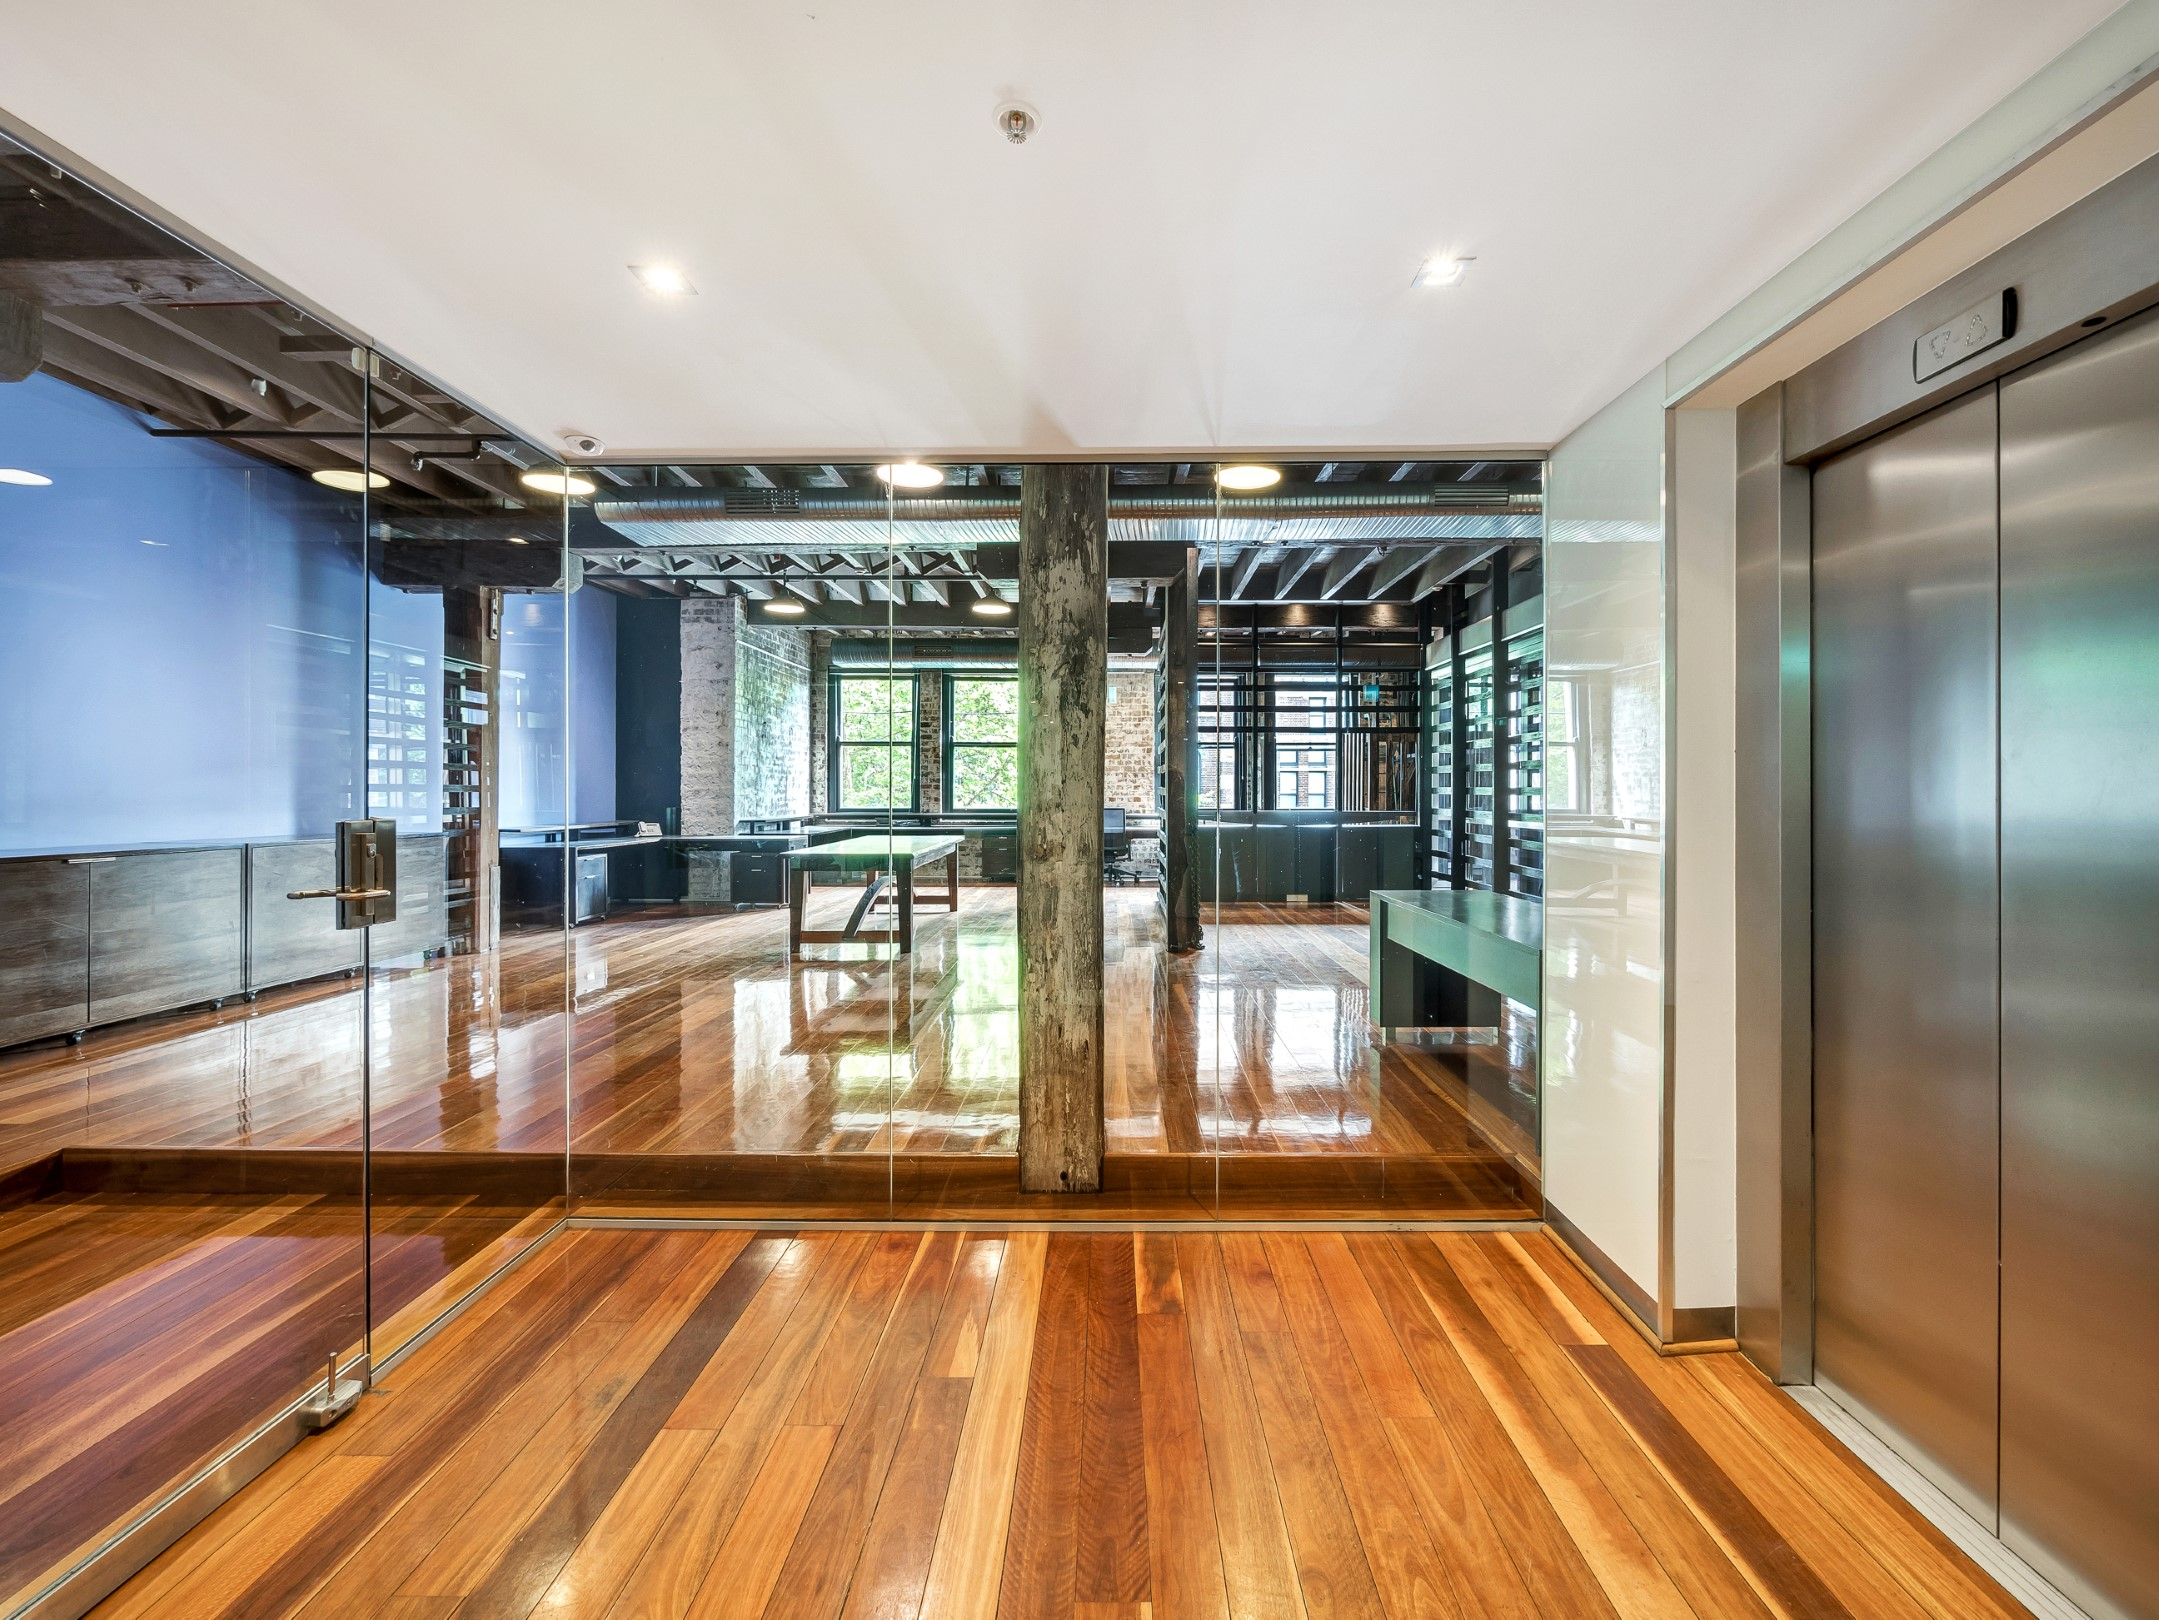 24 Hickson Road Creative Warehouse Style Office For Sale by Public Auction: Thursday, October 31